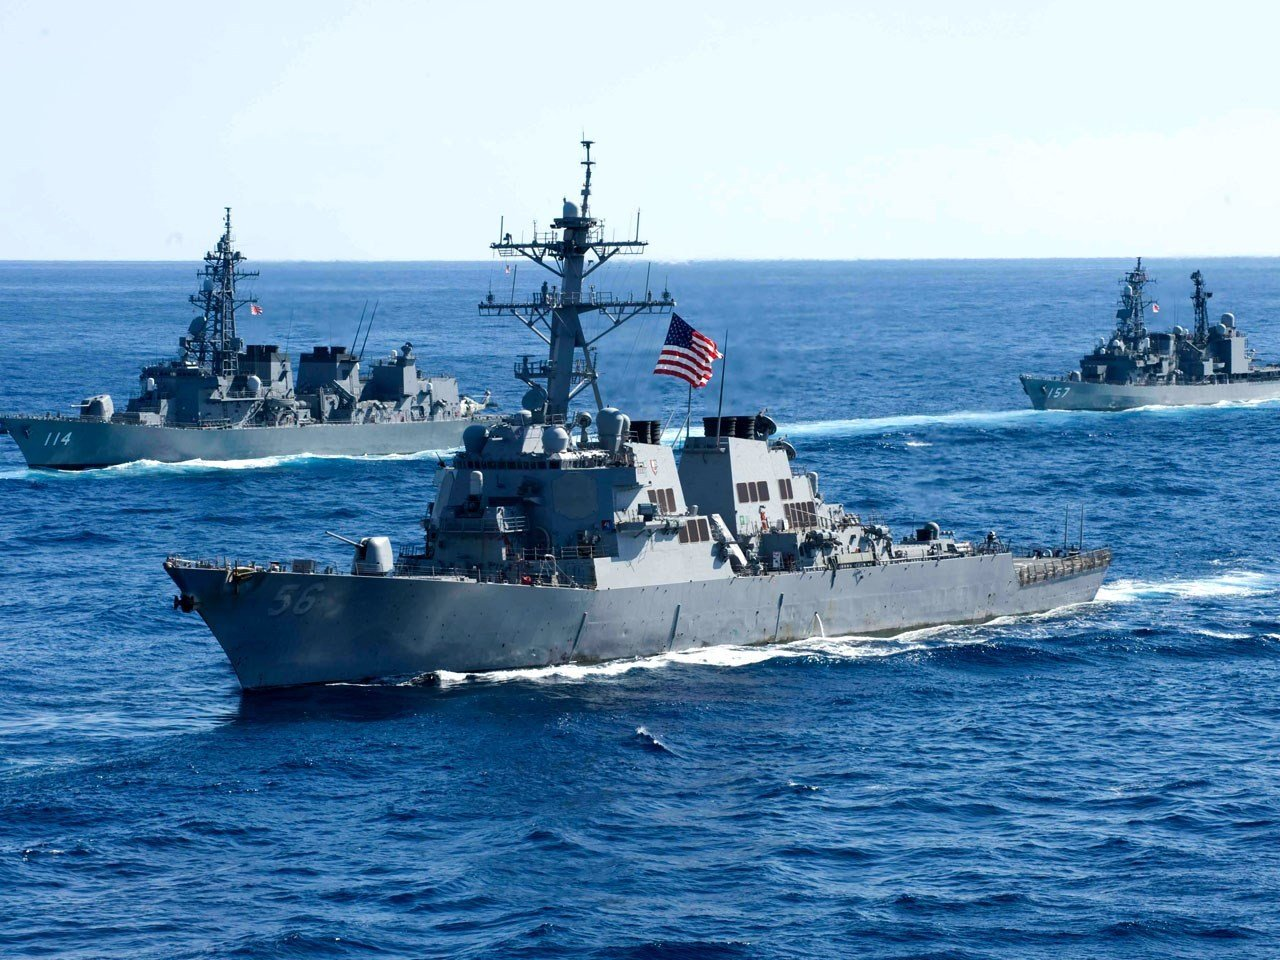 War ship collision fourth since January for U.S.  navy